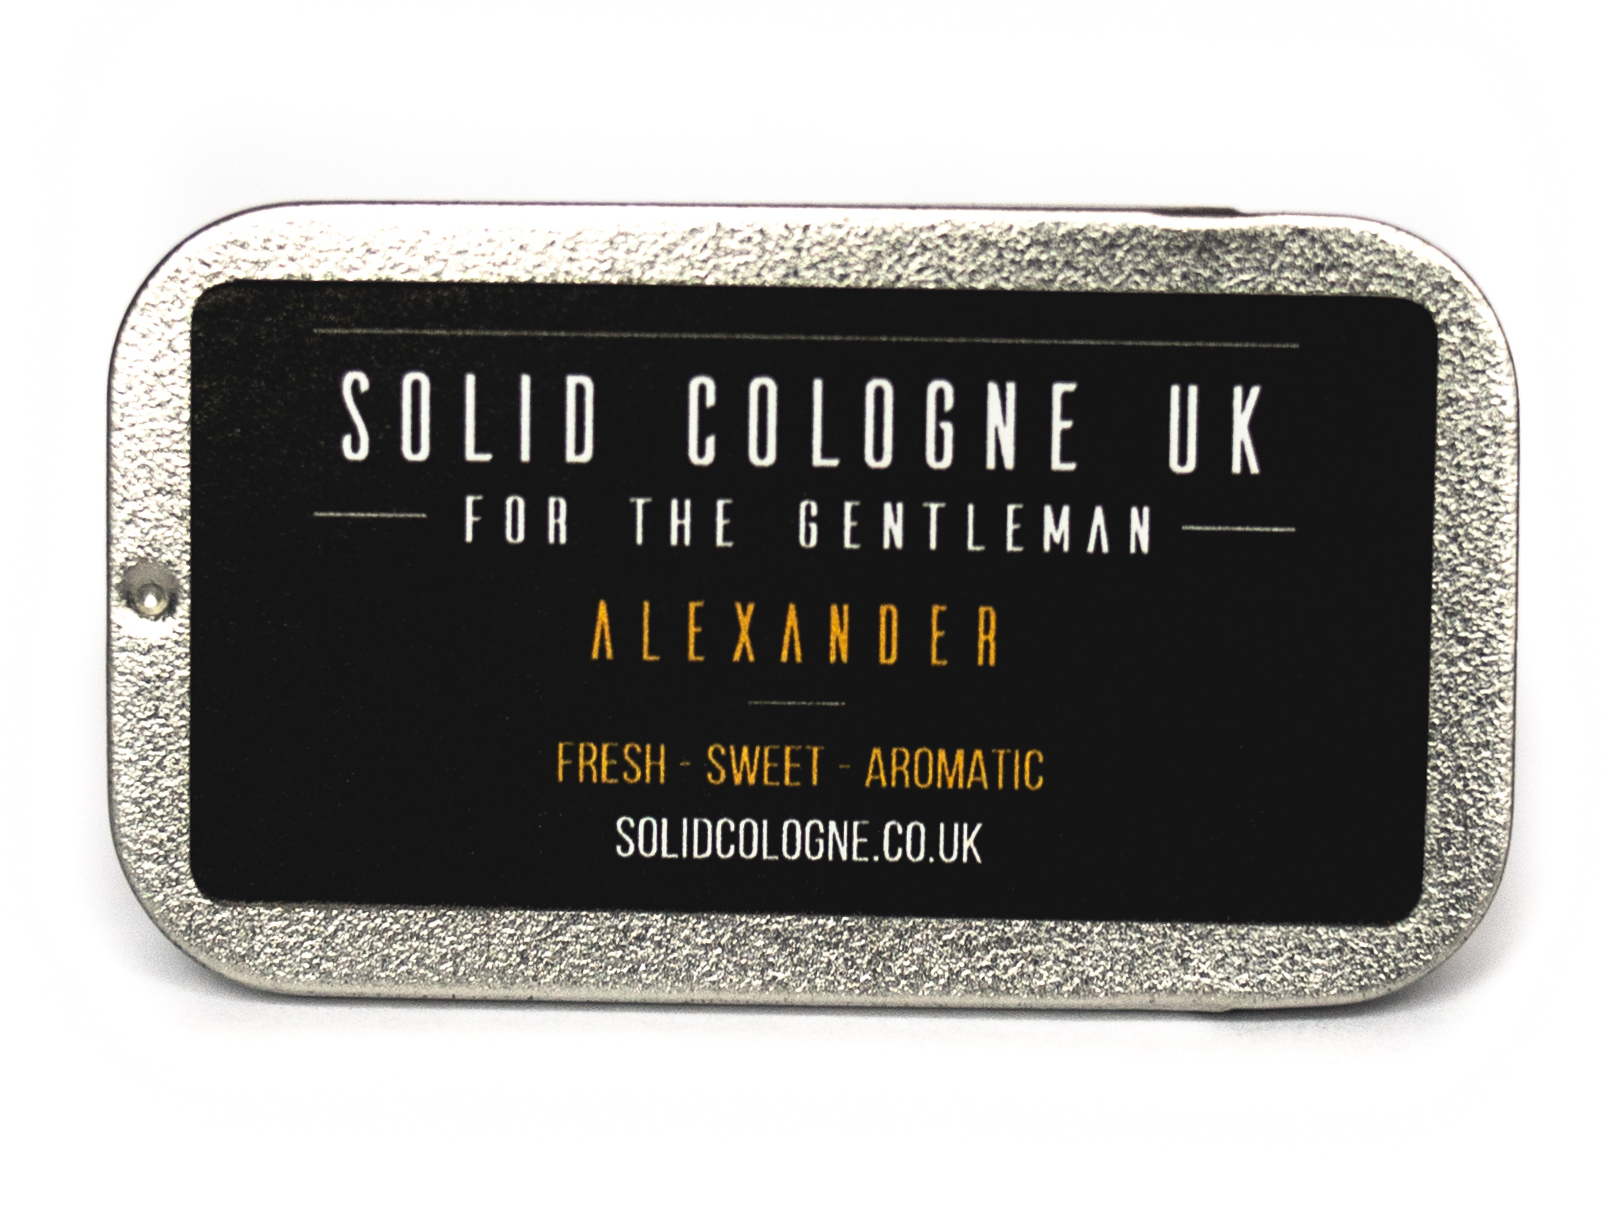 Alexander – a solid cologne